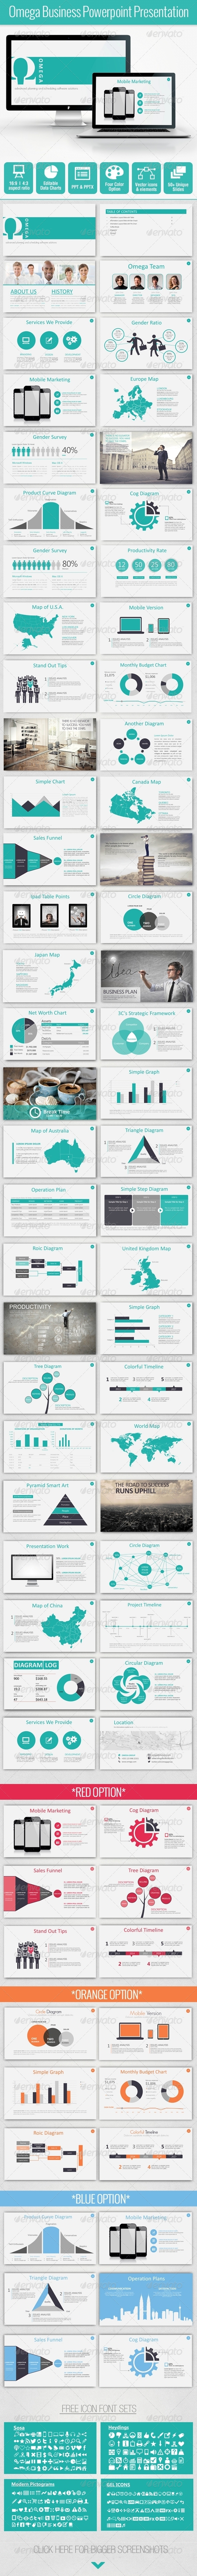 GraphicRiver Omega Bussiness Powerpoint Template 7517275